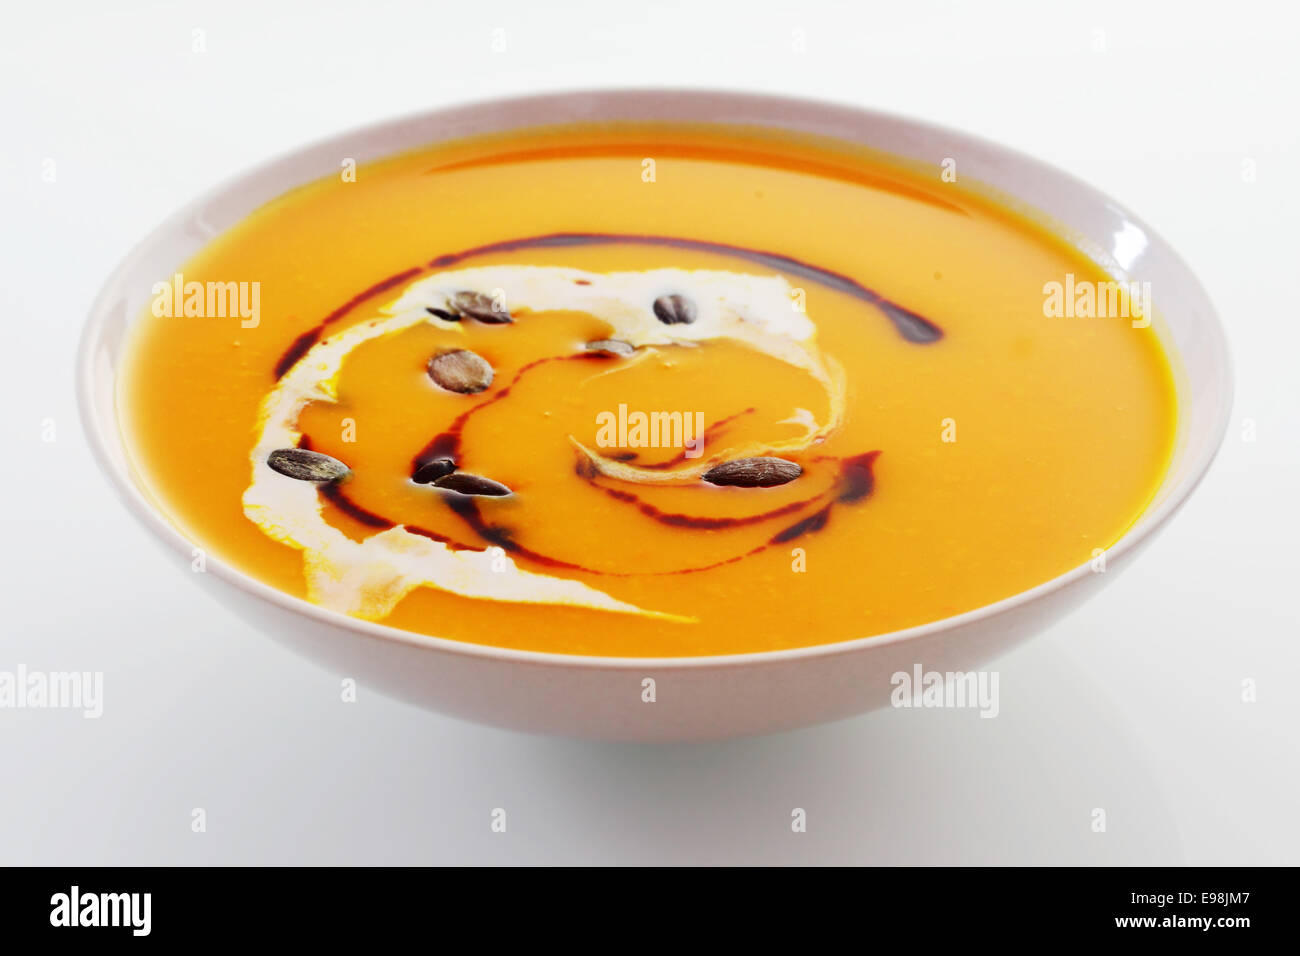 Creamy butternut or pumpkin soup for a tasty autumn appetizer for a Thanksgiving meal - Stock Image